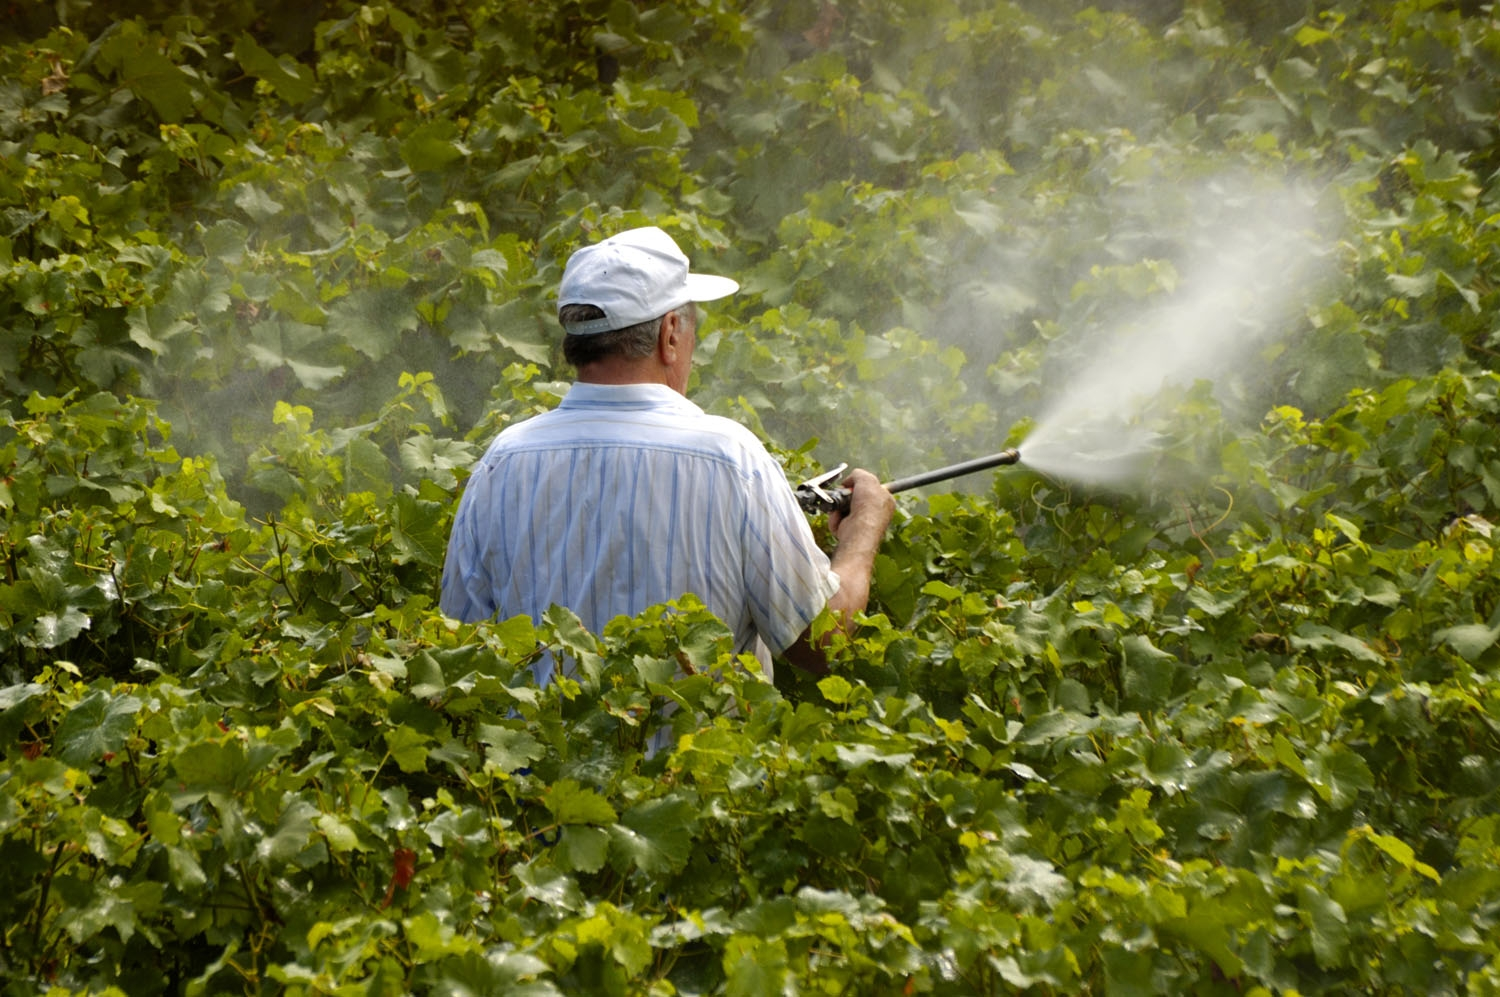 Pesticide drift new hampshire public radio for Garden pesticides